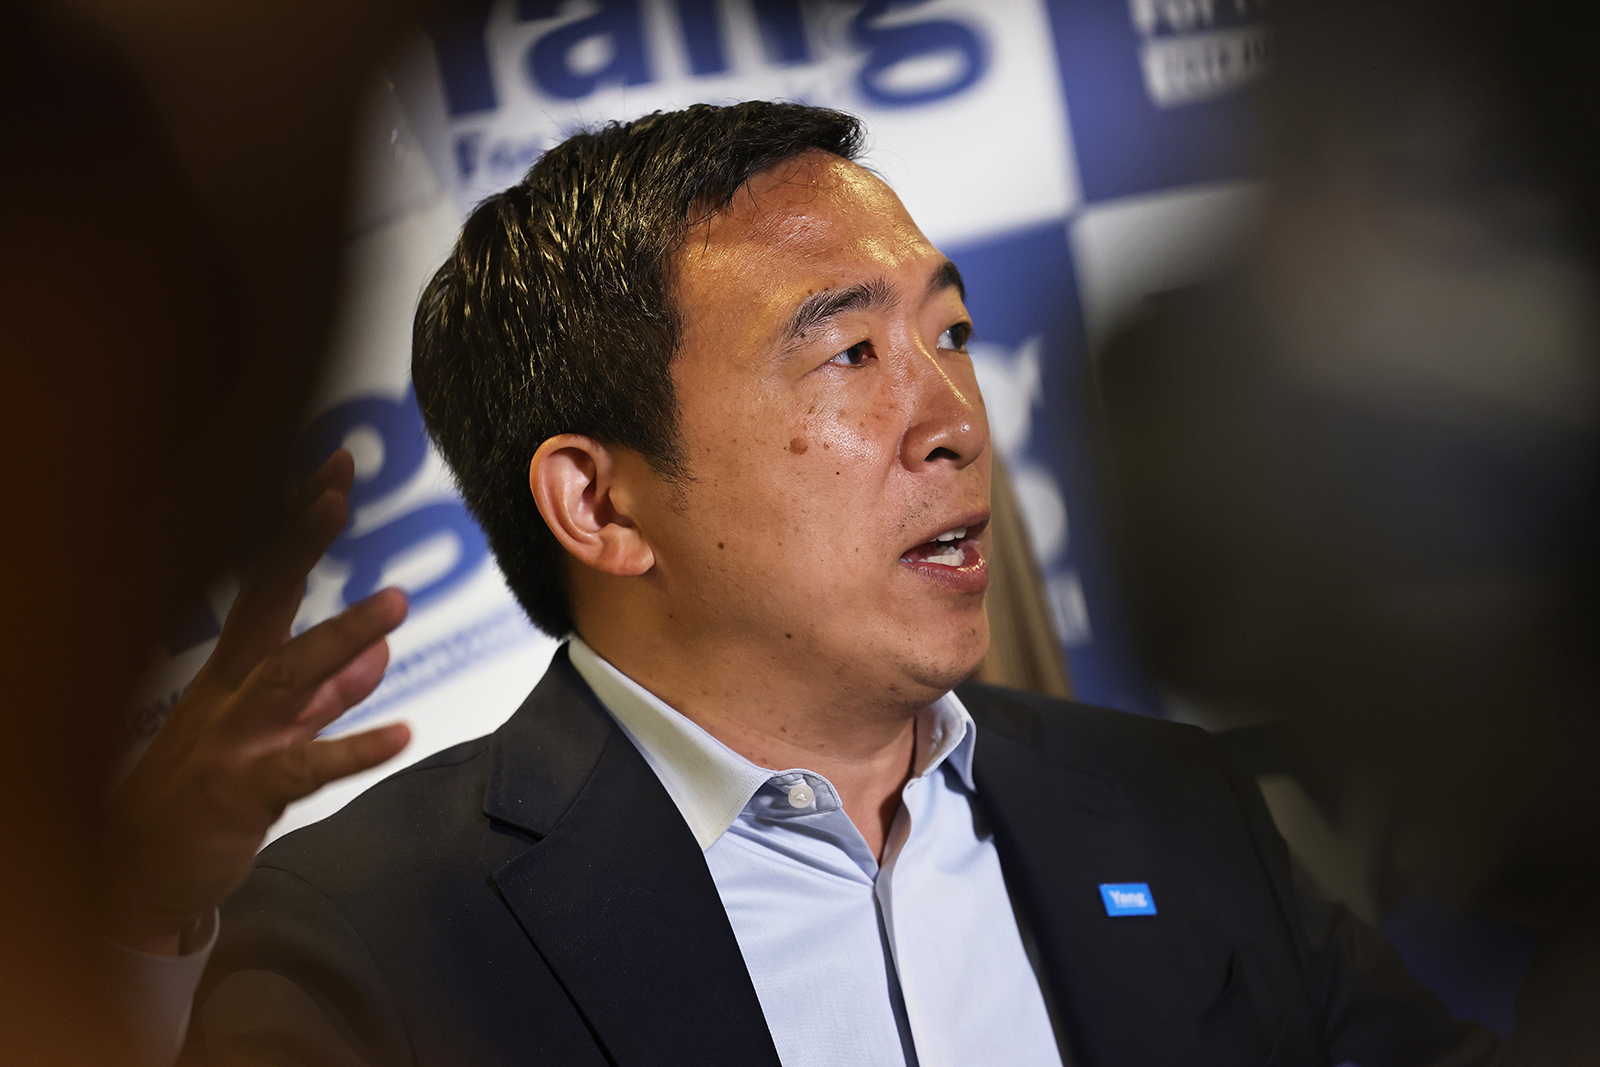 New York City mayoral candidate Andrew Yang speaks during a press conference with Assembly Member Simcha Eichenstein on June 21, in the Bensonhurst neighborhood of the Brooklyn borough in New York City.